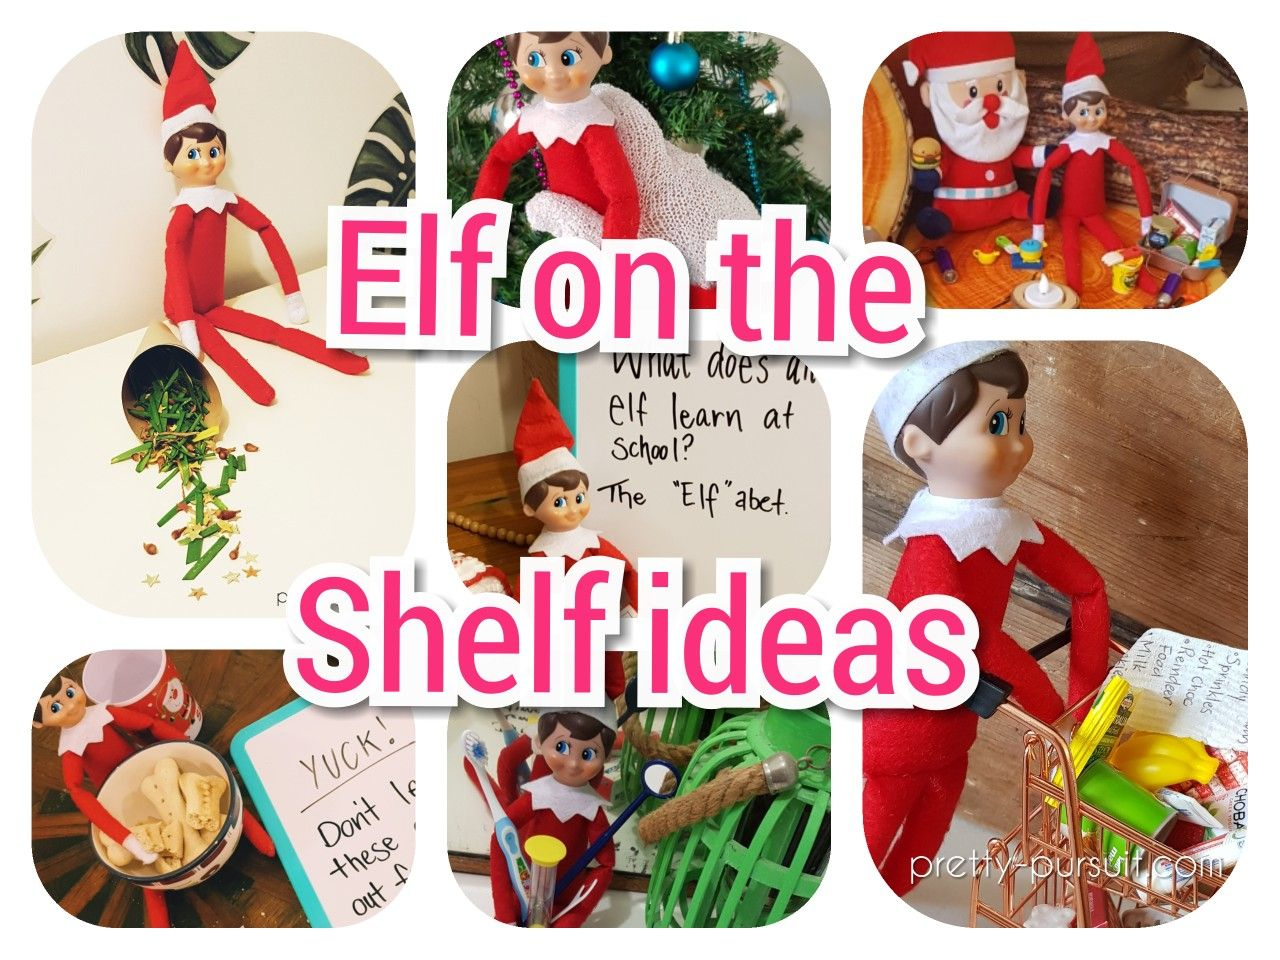 Elf on the shelf ideas. Elf antics. Ideas for each night + elf on the shelf